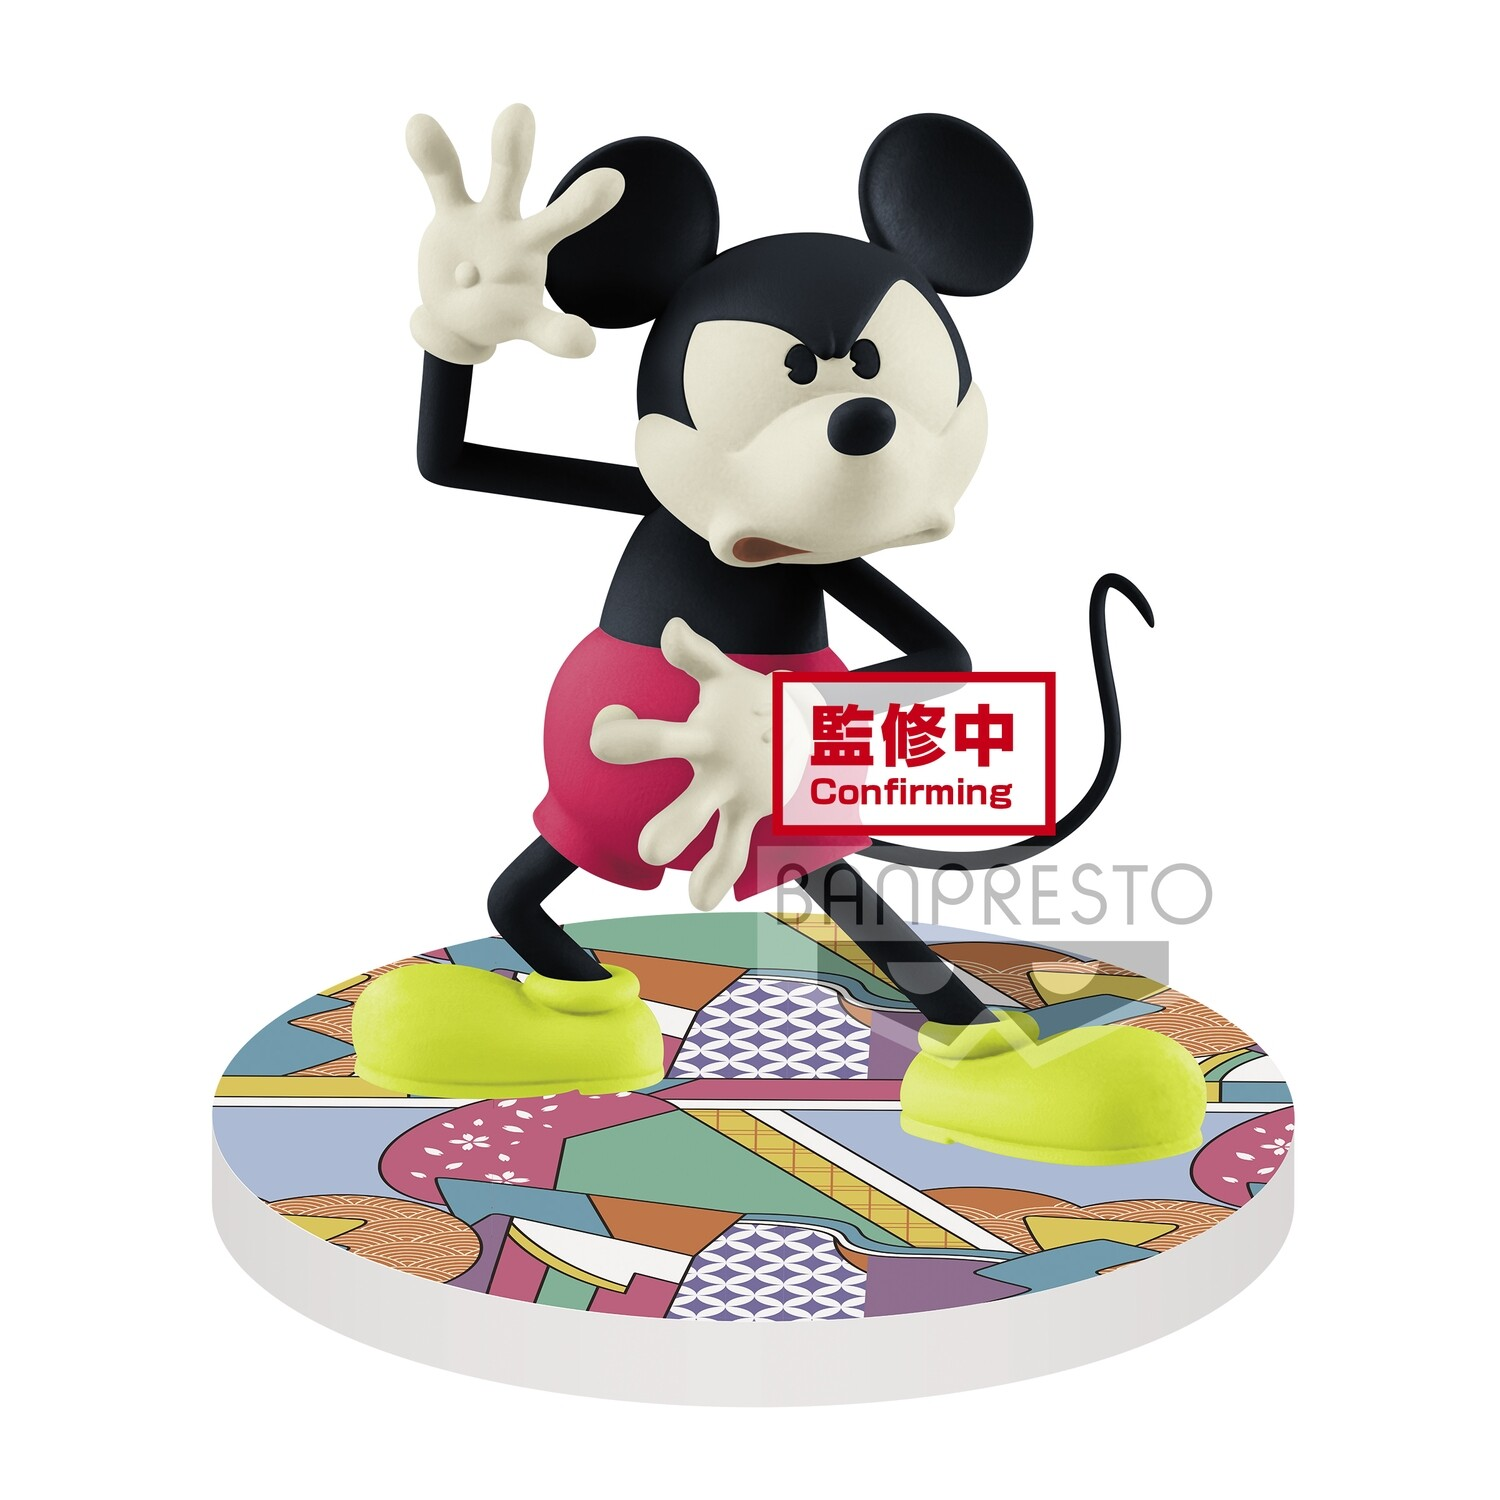 PRE-ORDER DISNEY CHARACTERS MICKEY MOUSE -TOUCH! JAPONISM-(VER.A)